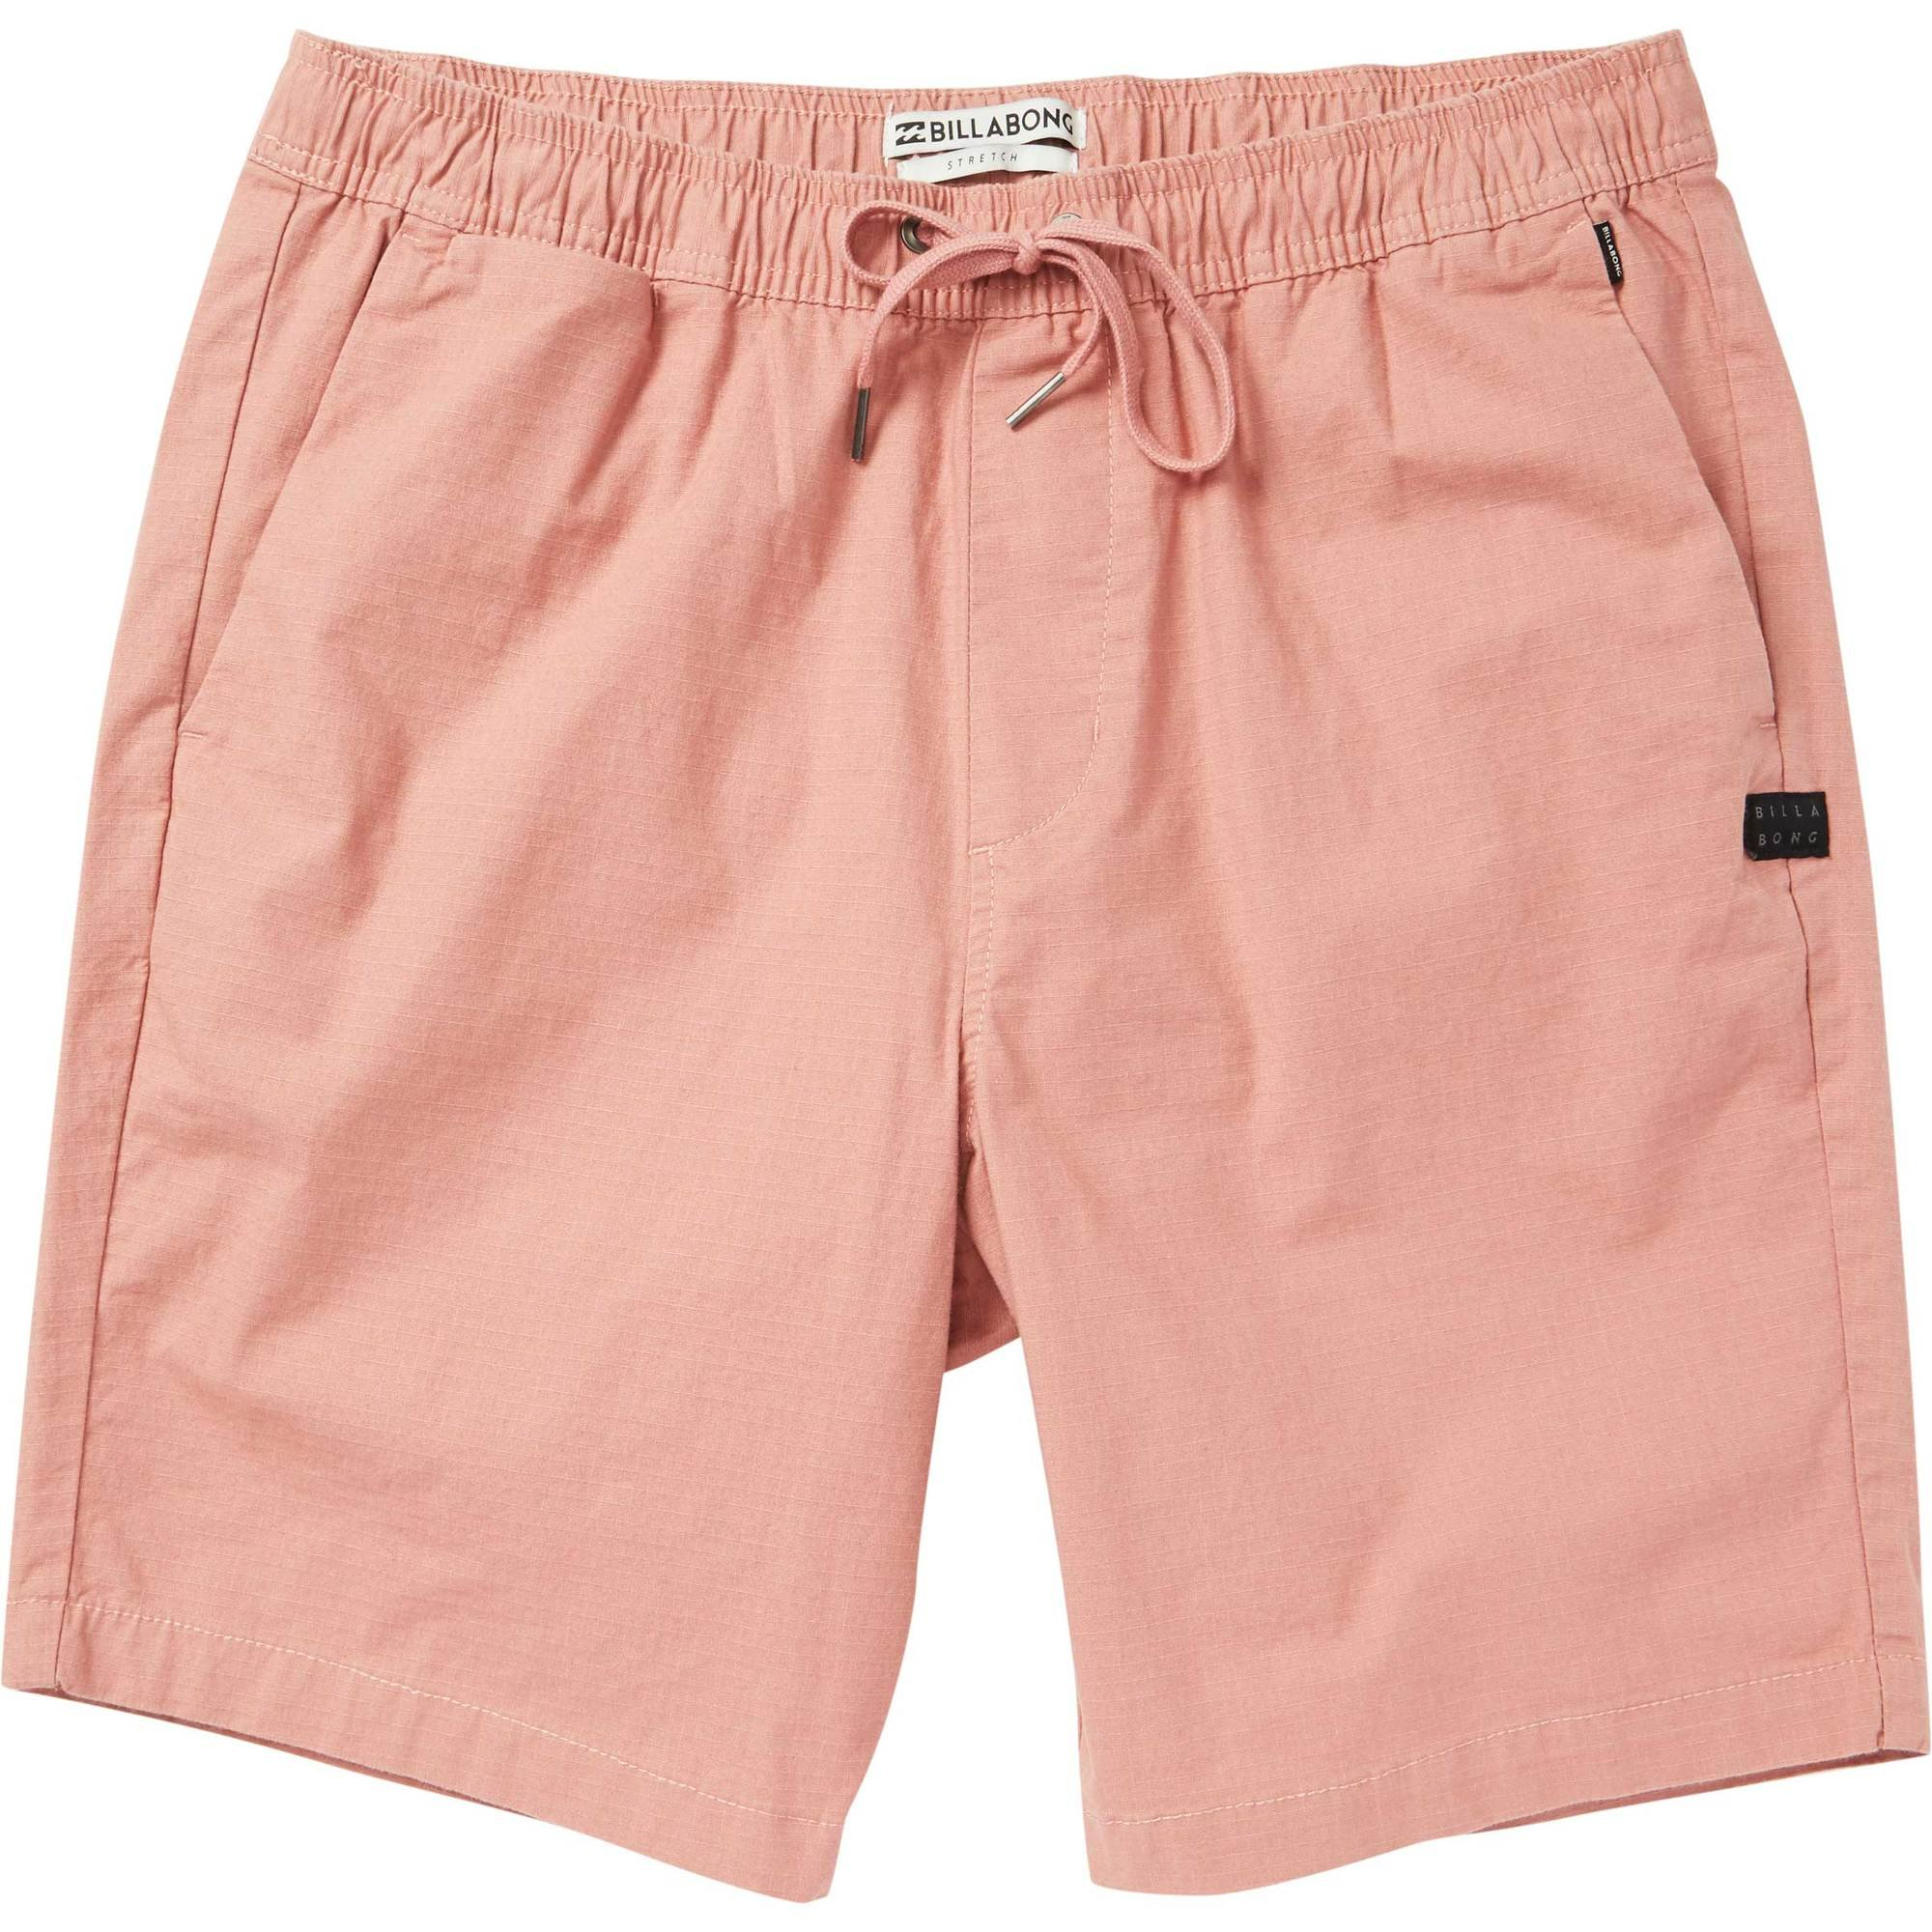 Billabong Men's Larry Layback Short, Ash Rose, M by Billabong (Image #1)